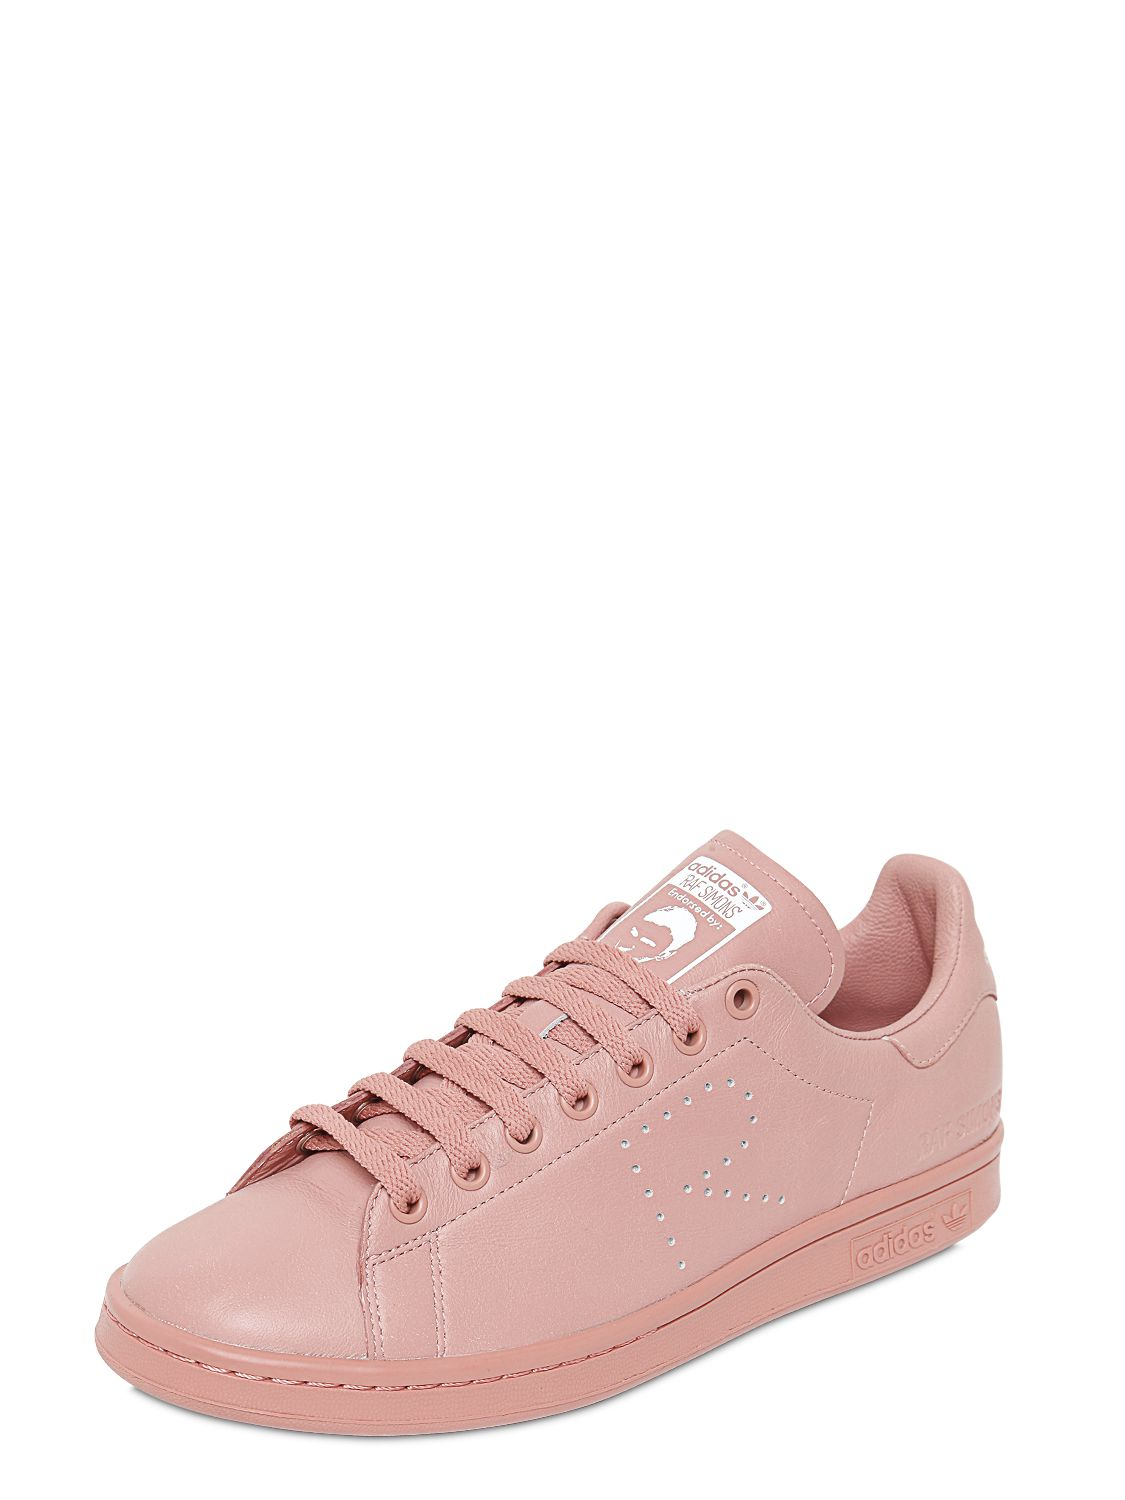 adidas by raf simons stan smith leather sneakers in pink. Black Bedroom Furniture Sets. Home Design Ideas